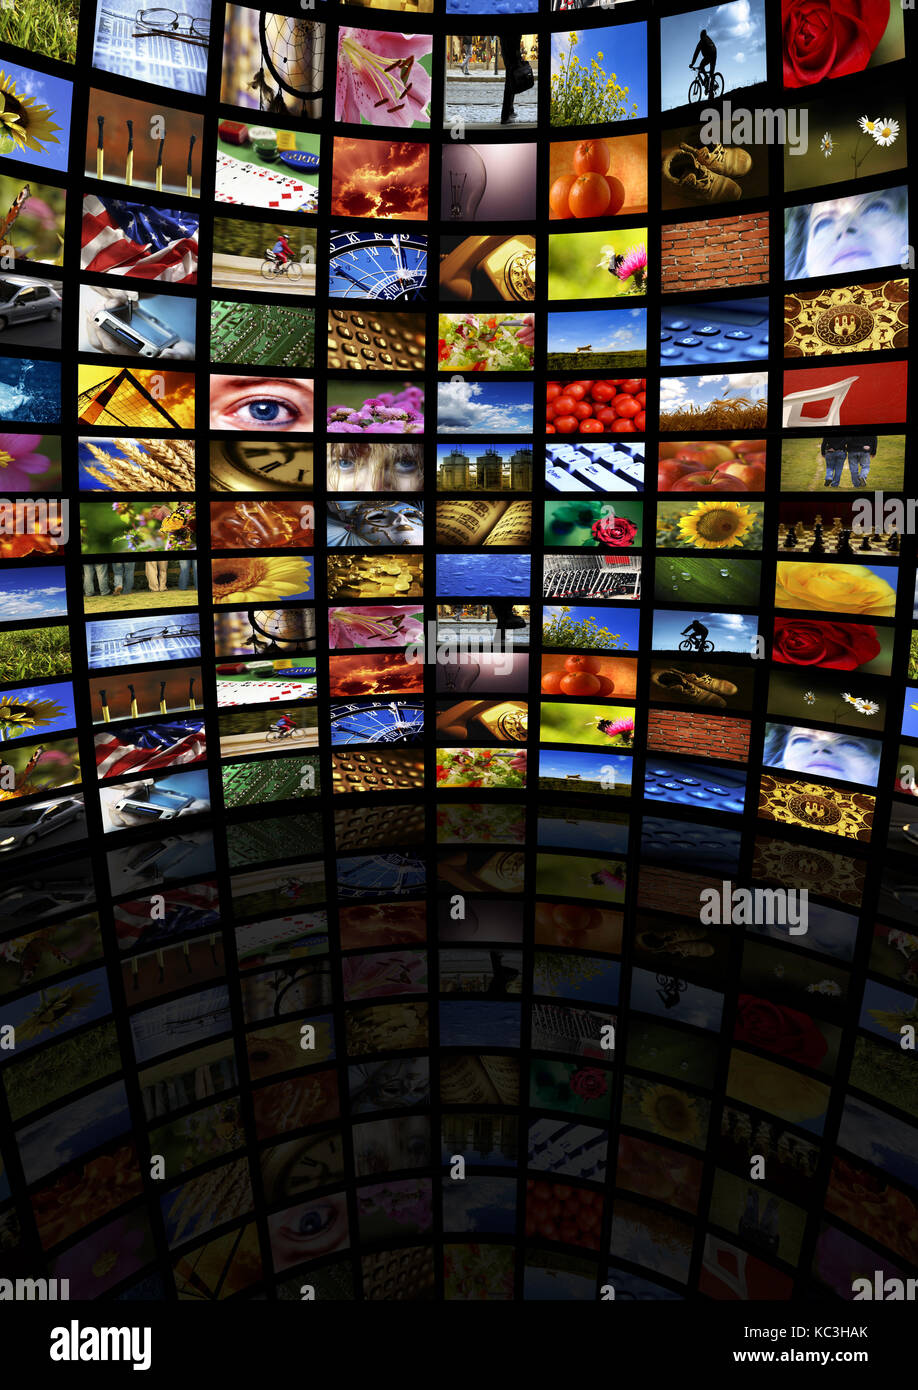 room with many screen with images, internet broadcasting, digital television and new media concept - Stock Image